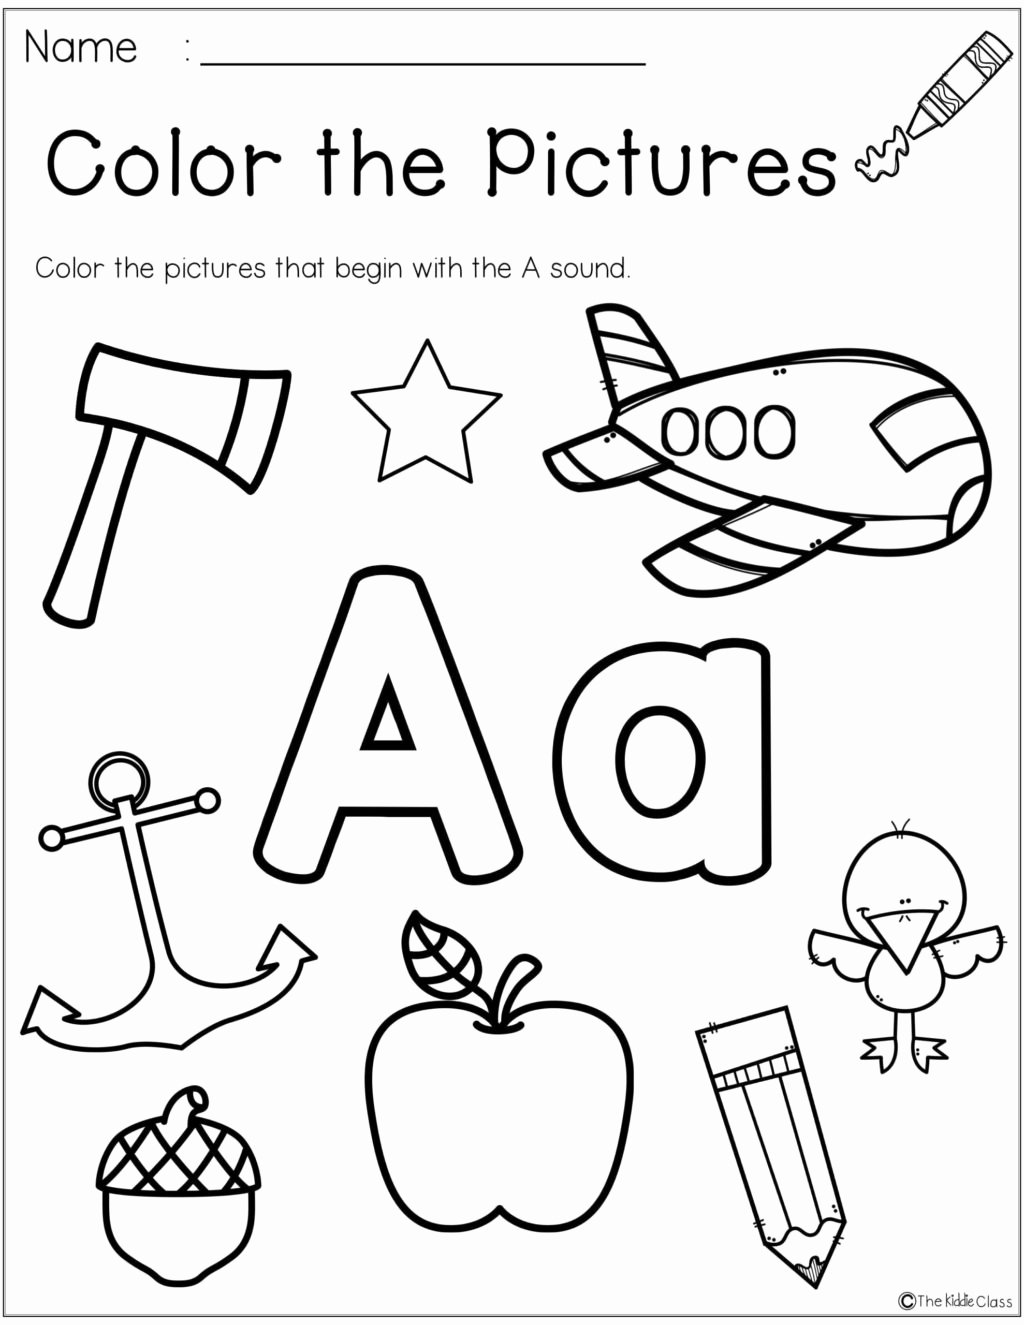 English Alphabet Worksheets for Preschoolers top Worksheet Amazing Kindergarten Mathomework Ideas